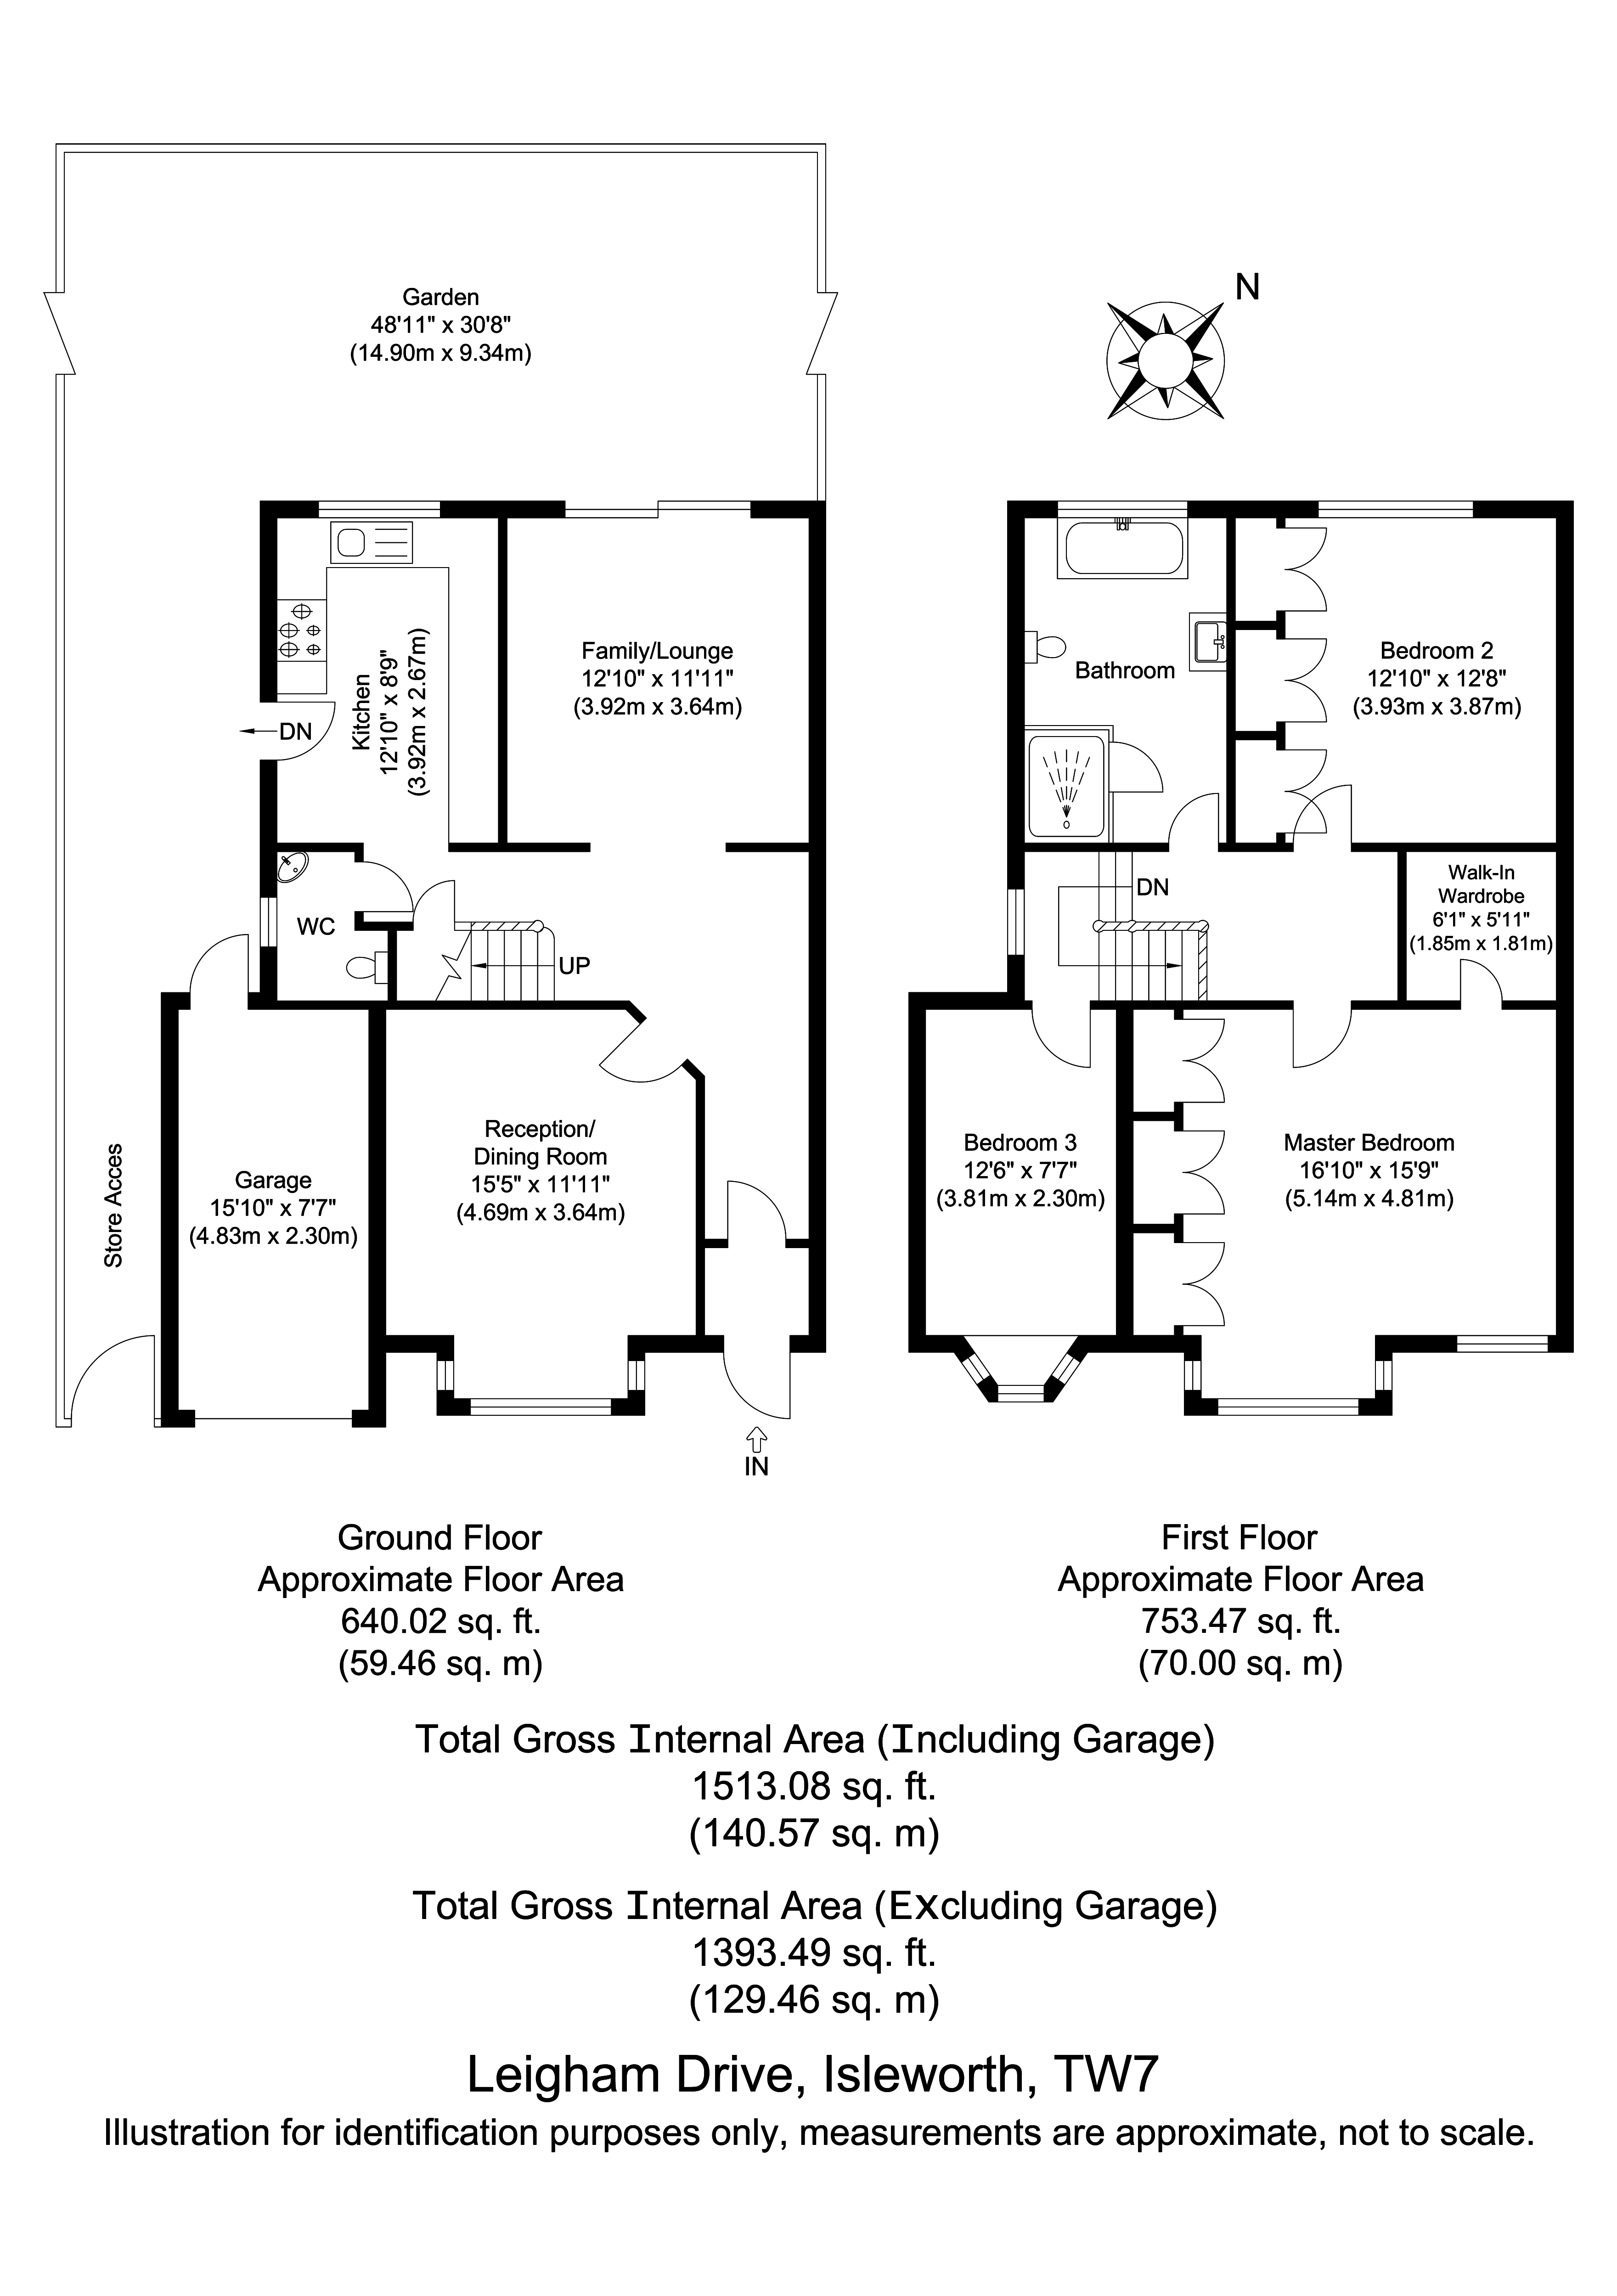 Floorplans For Leigham Drive, Osterley